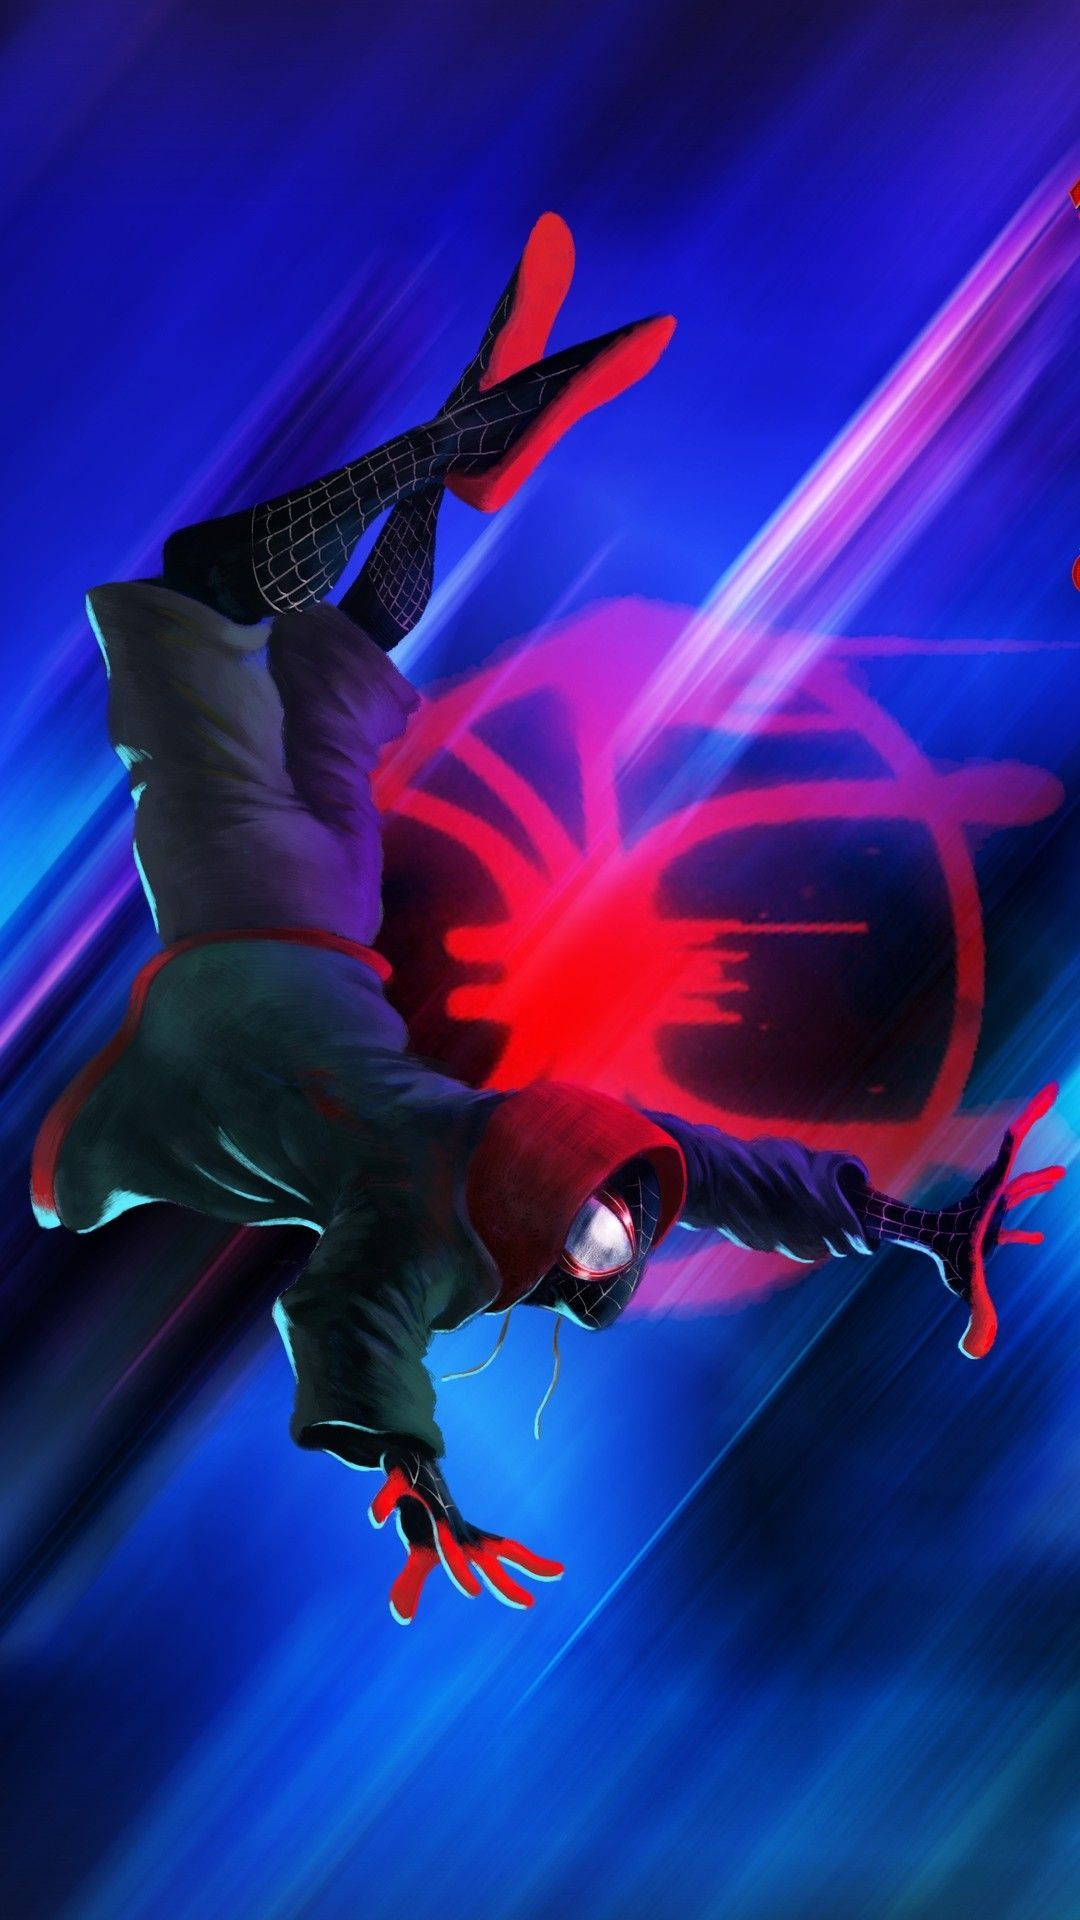 Spider Man Verse Amoled Wallpapers - Wallpaper Cave